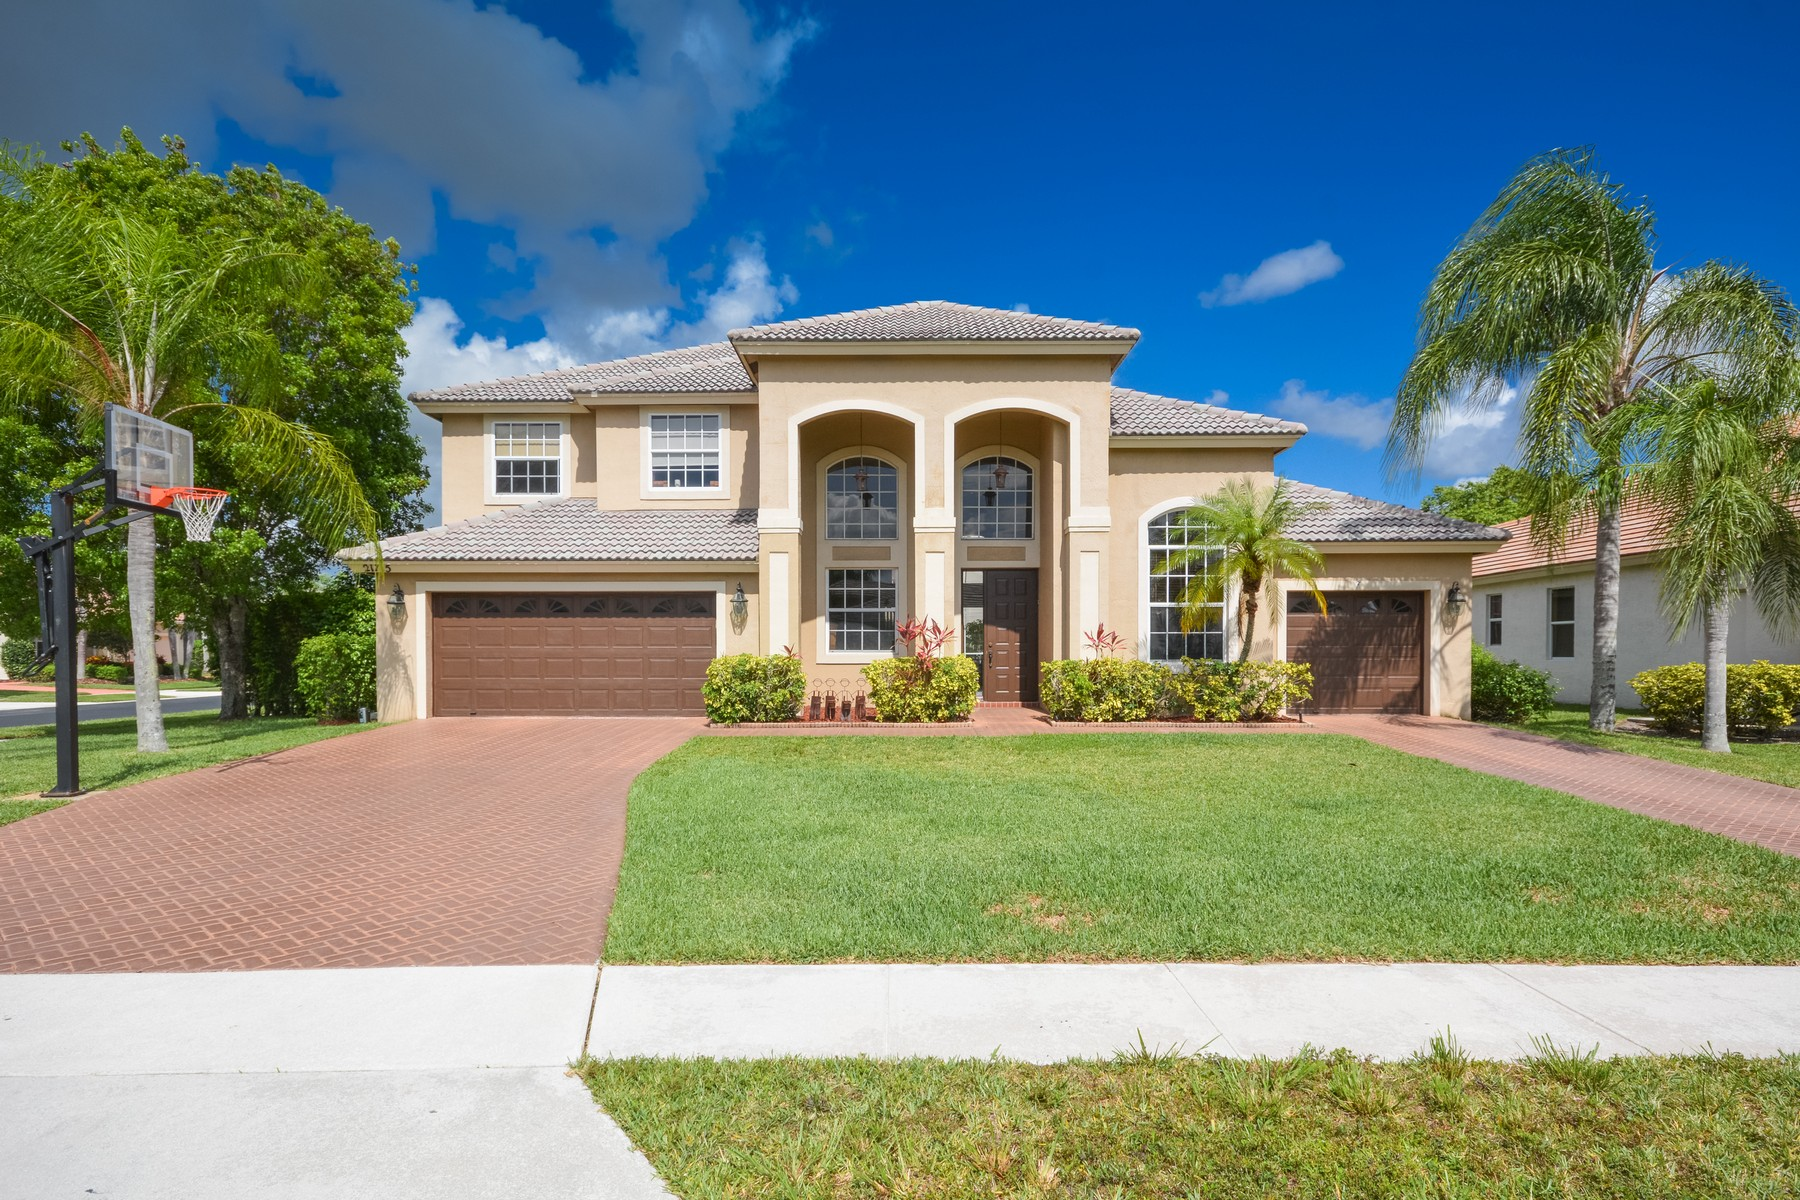 Single Family Home for Sale at 21715 Abington Ct , Boca Raton, FL 33428 21715 Abington Ct Boca Raton, Florida, 33428 United States